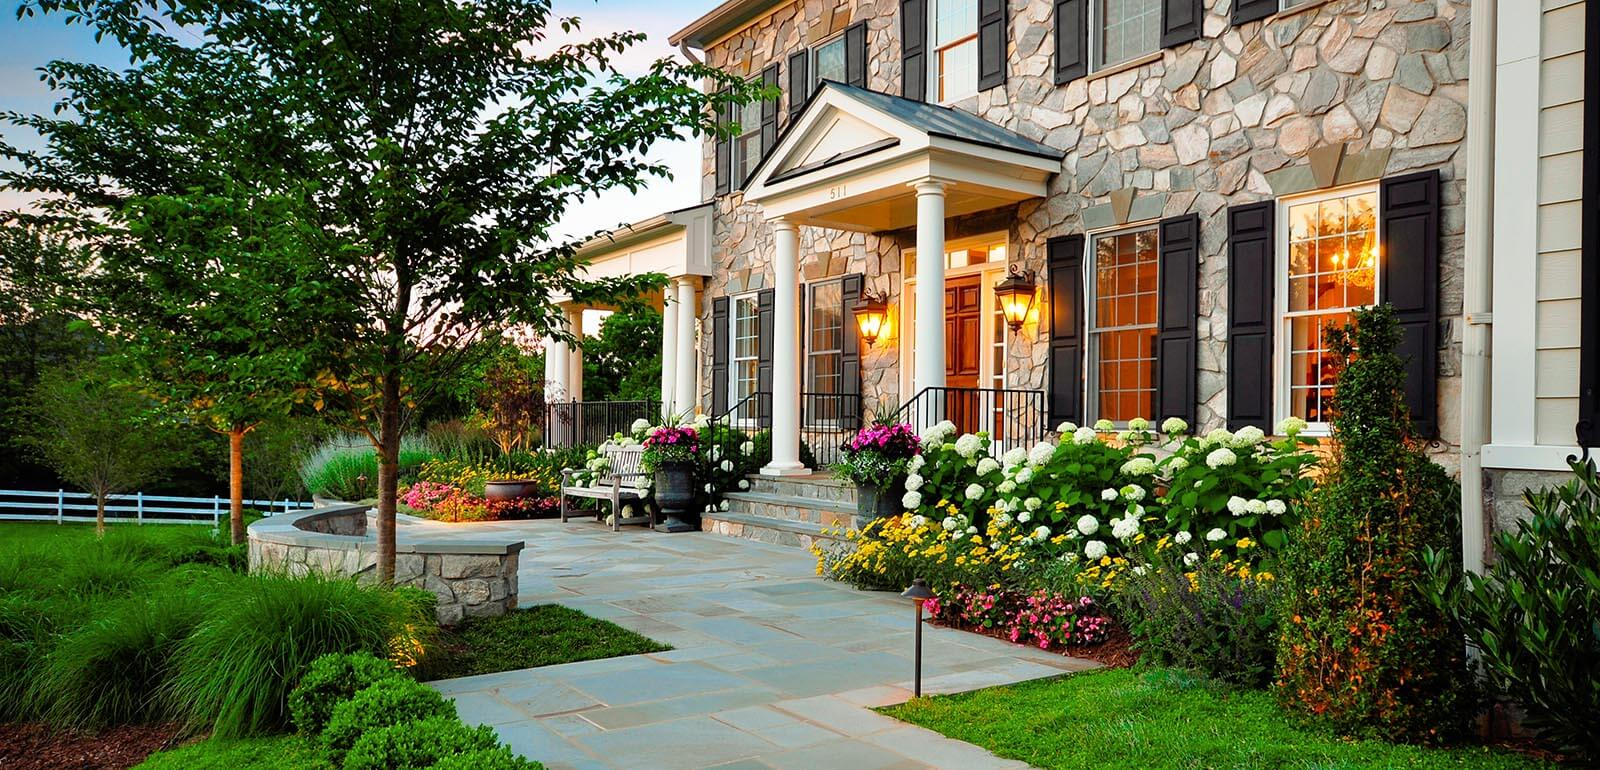 22 Most Beautiful Front Yard Landscaping Designs & Ideas ... on Home Backyard Ideas id=16811